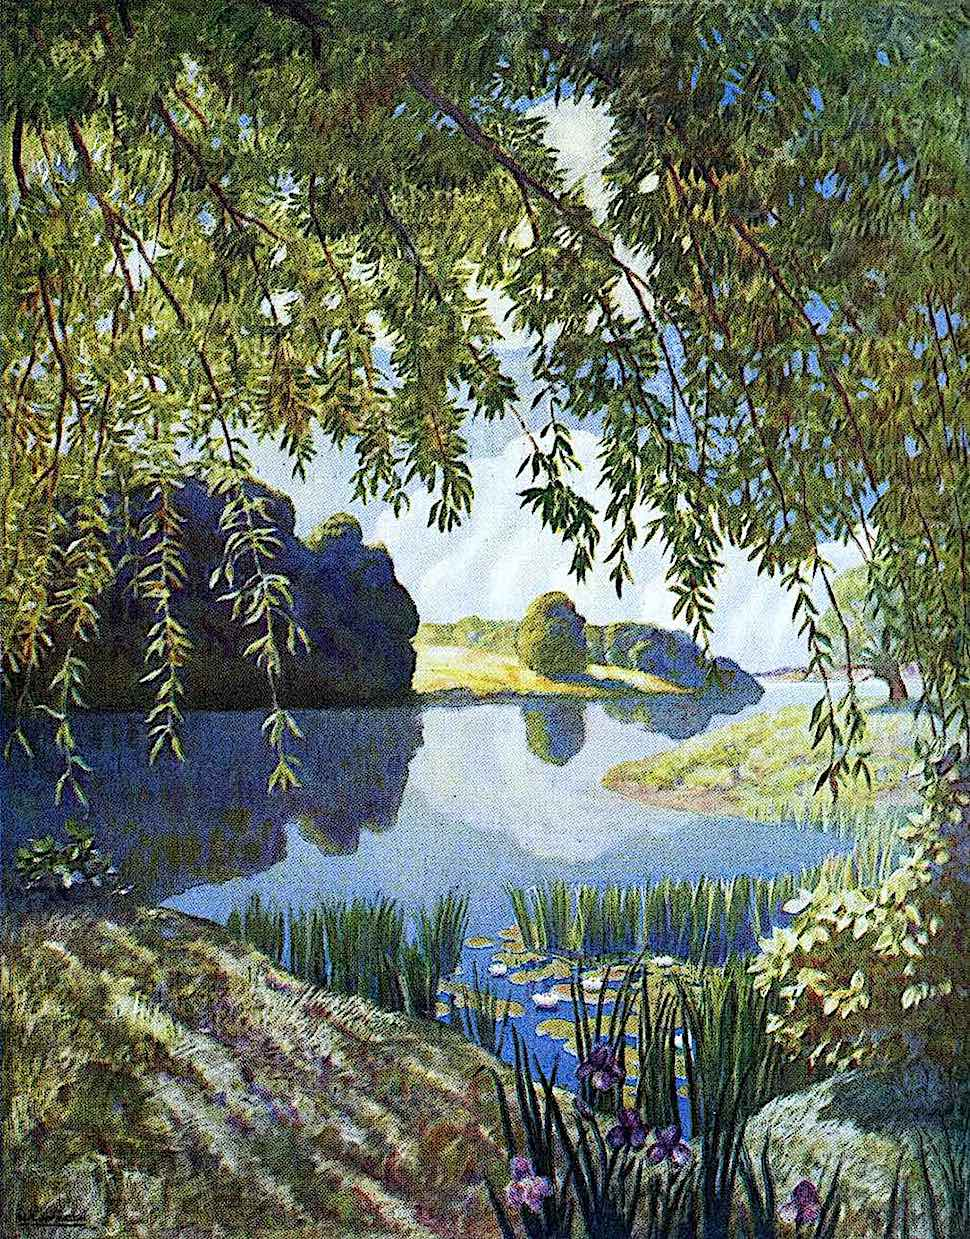 an N.C. Wyeth illustration of marsh wetlands and a pond